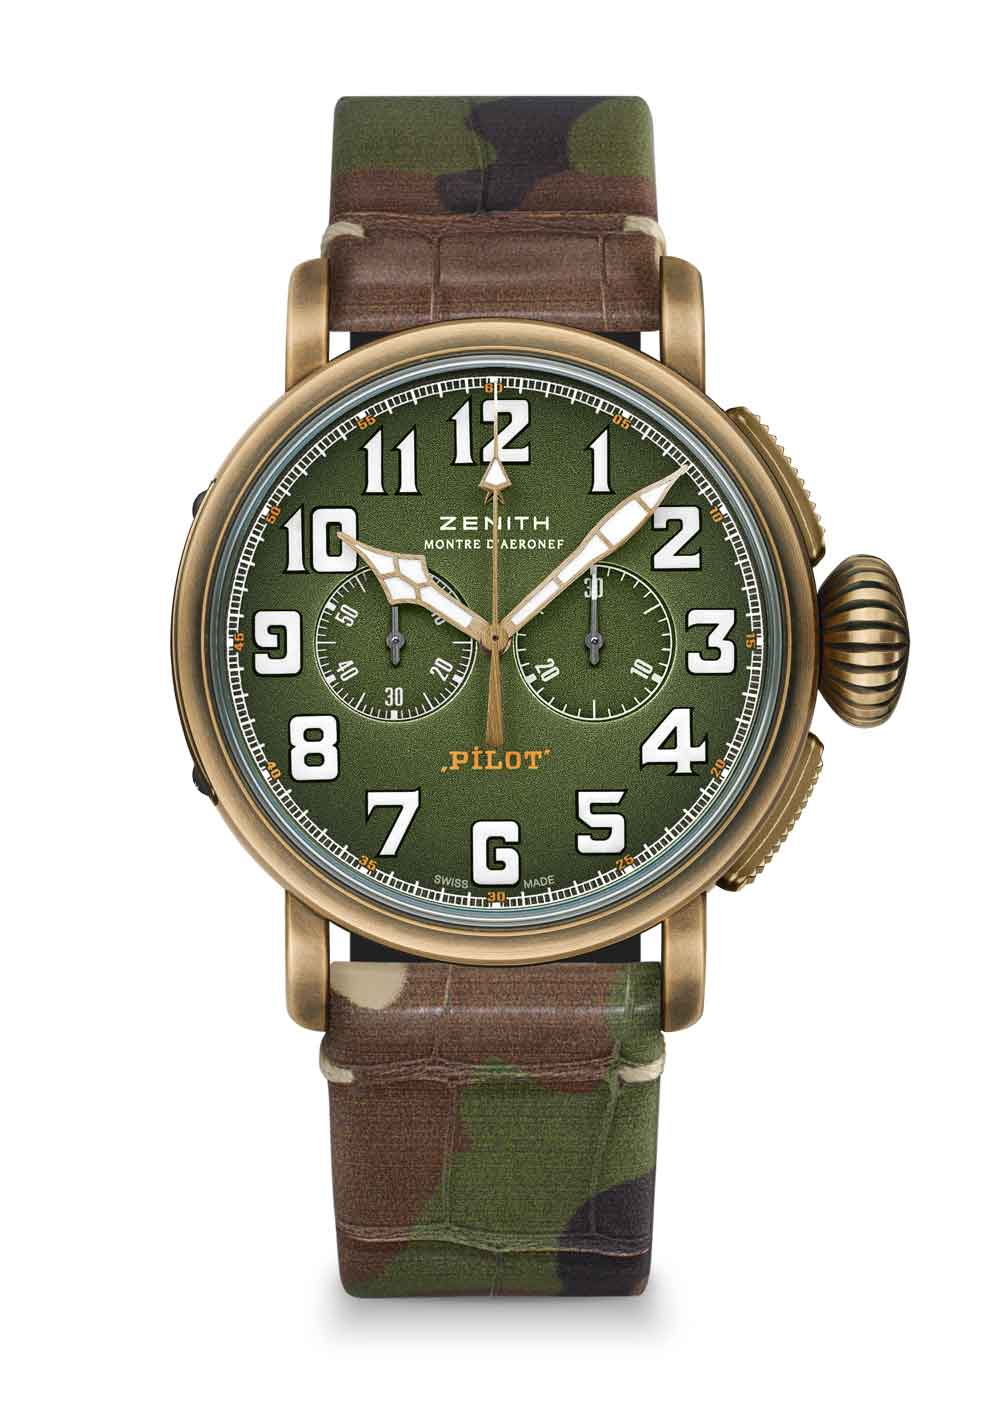 Reloj Zenith Pilot Type 20 Adventure